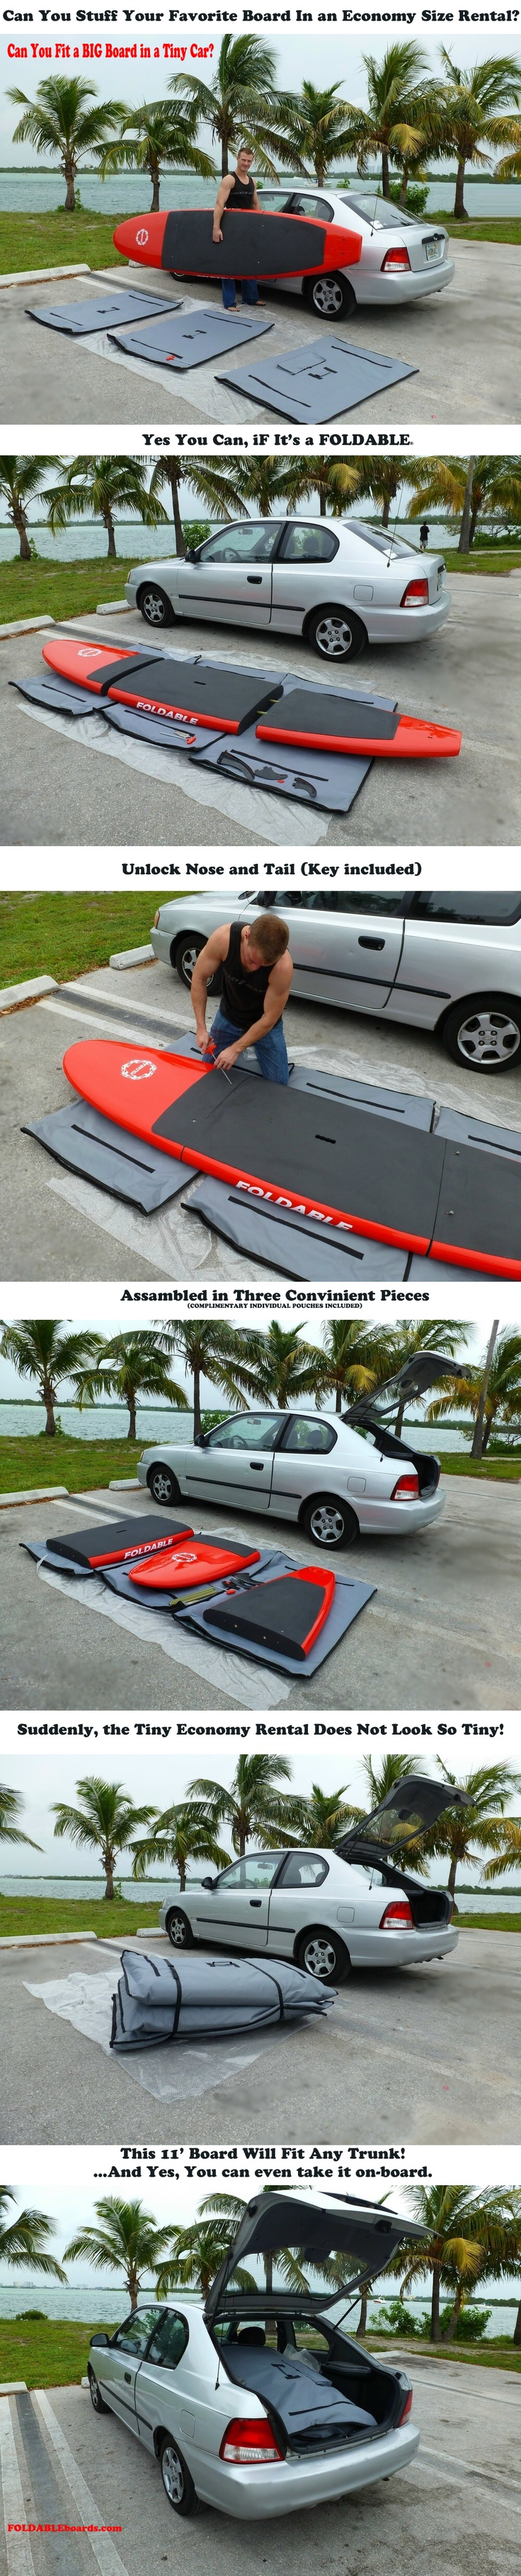 Can you fit a large 11ft board in an economy size car rental